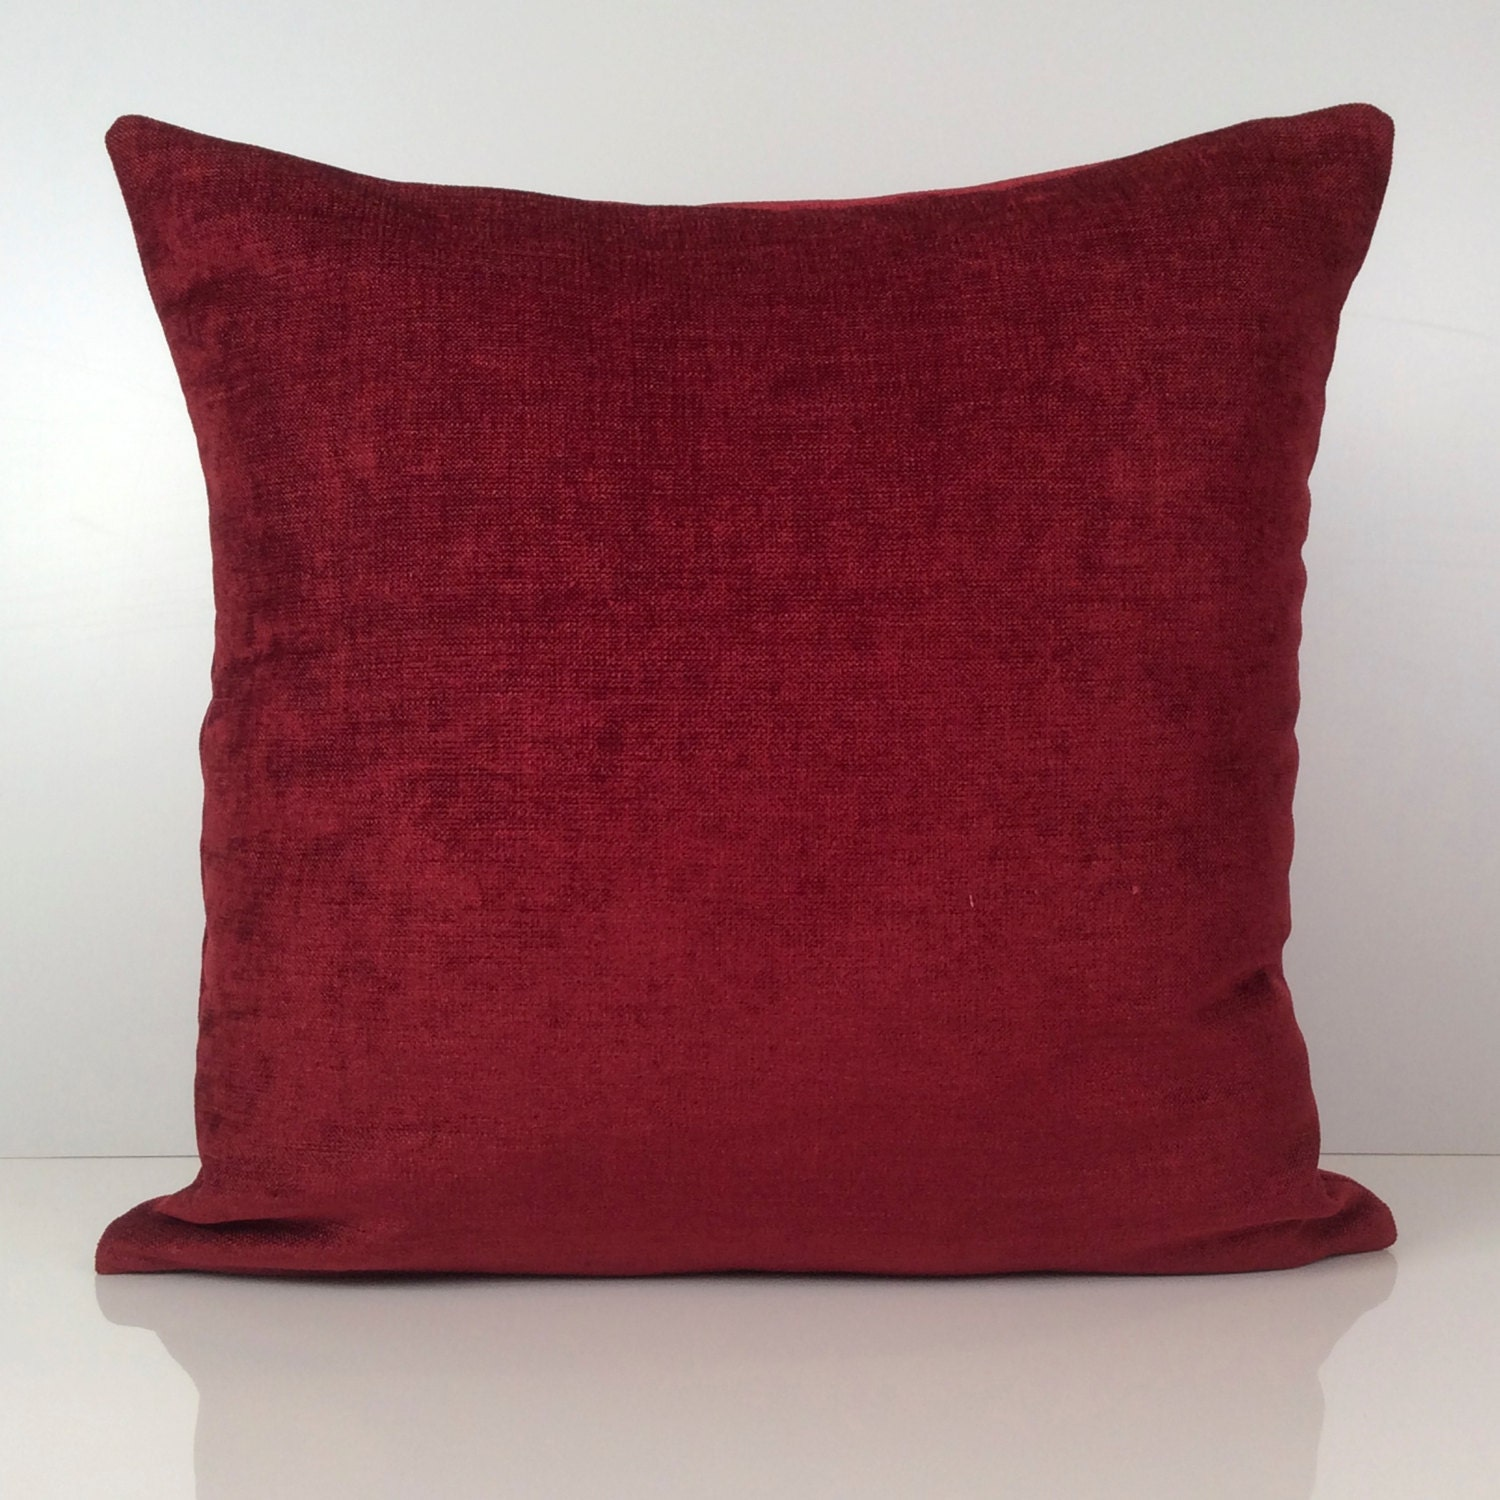 Burgundy Colored Throw Pillows : Bright Burgundy Pillow Throw Pillow Cover Decorative Pillow